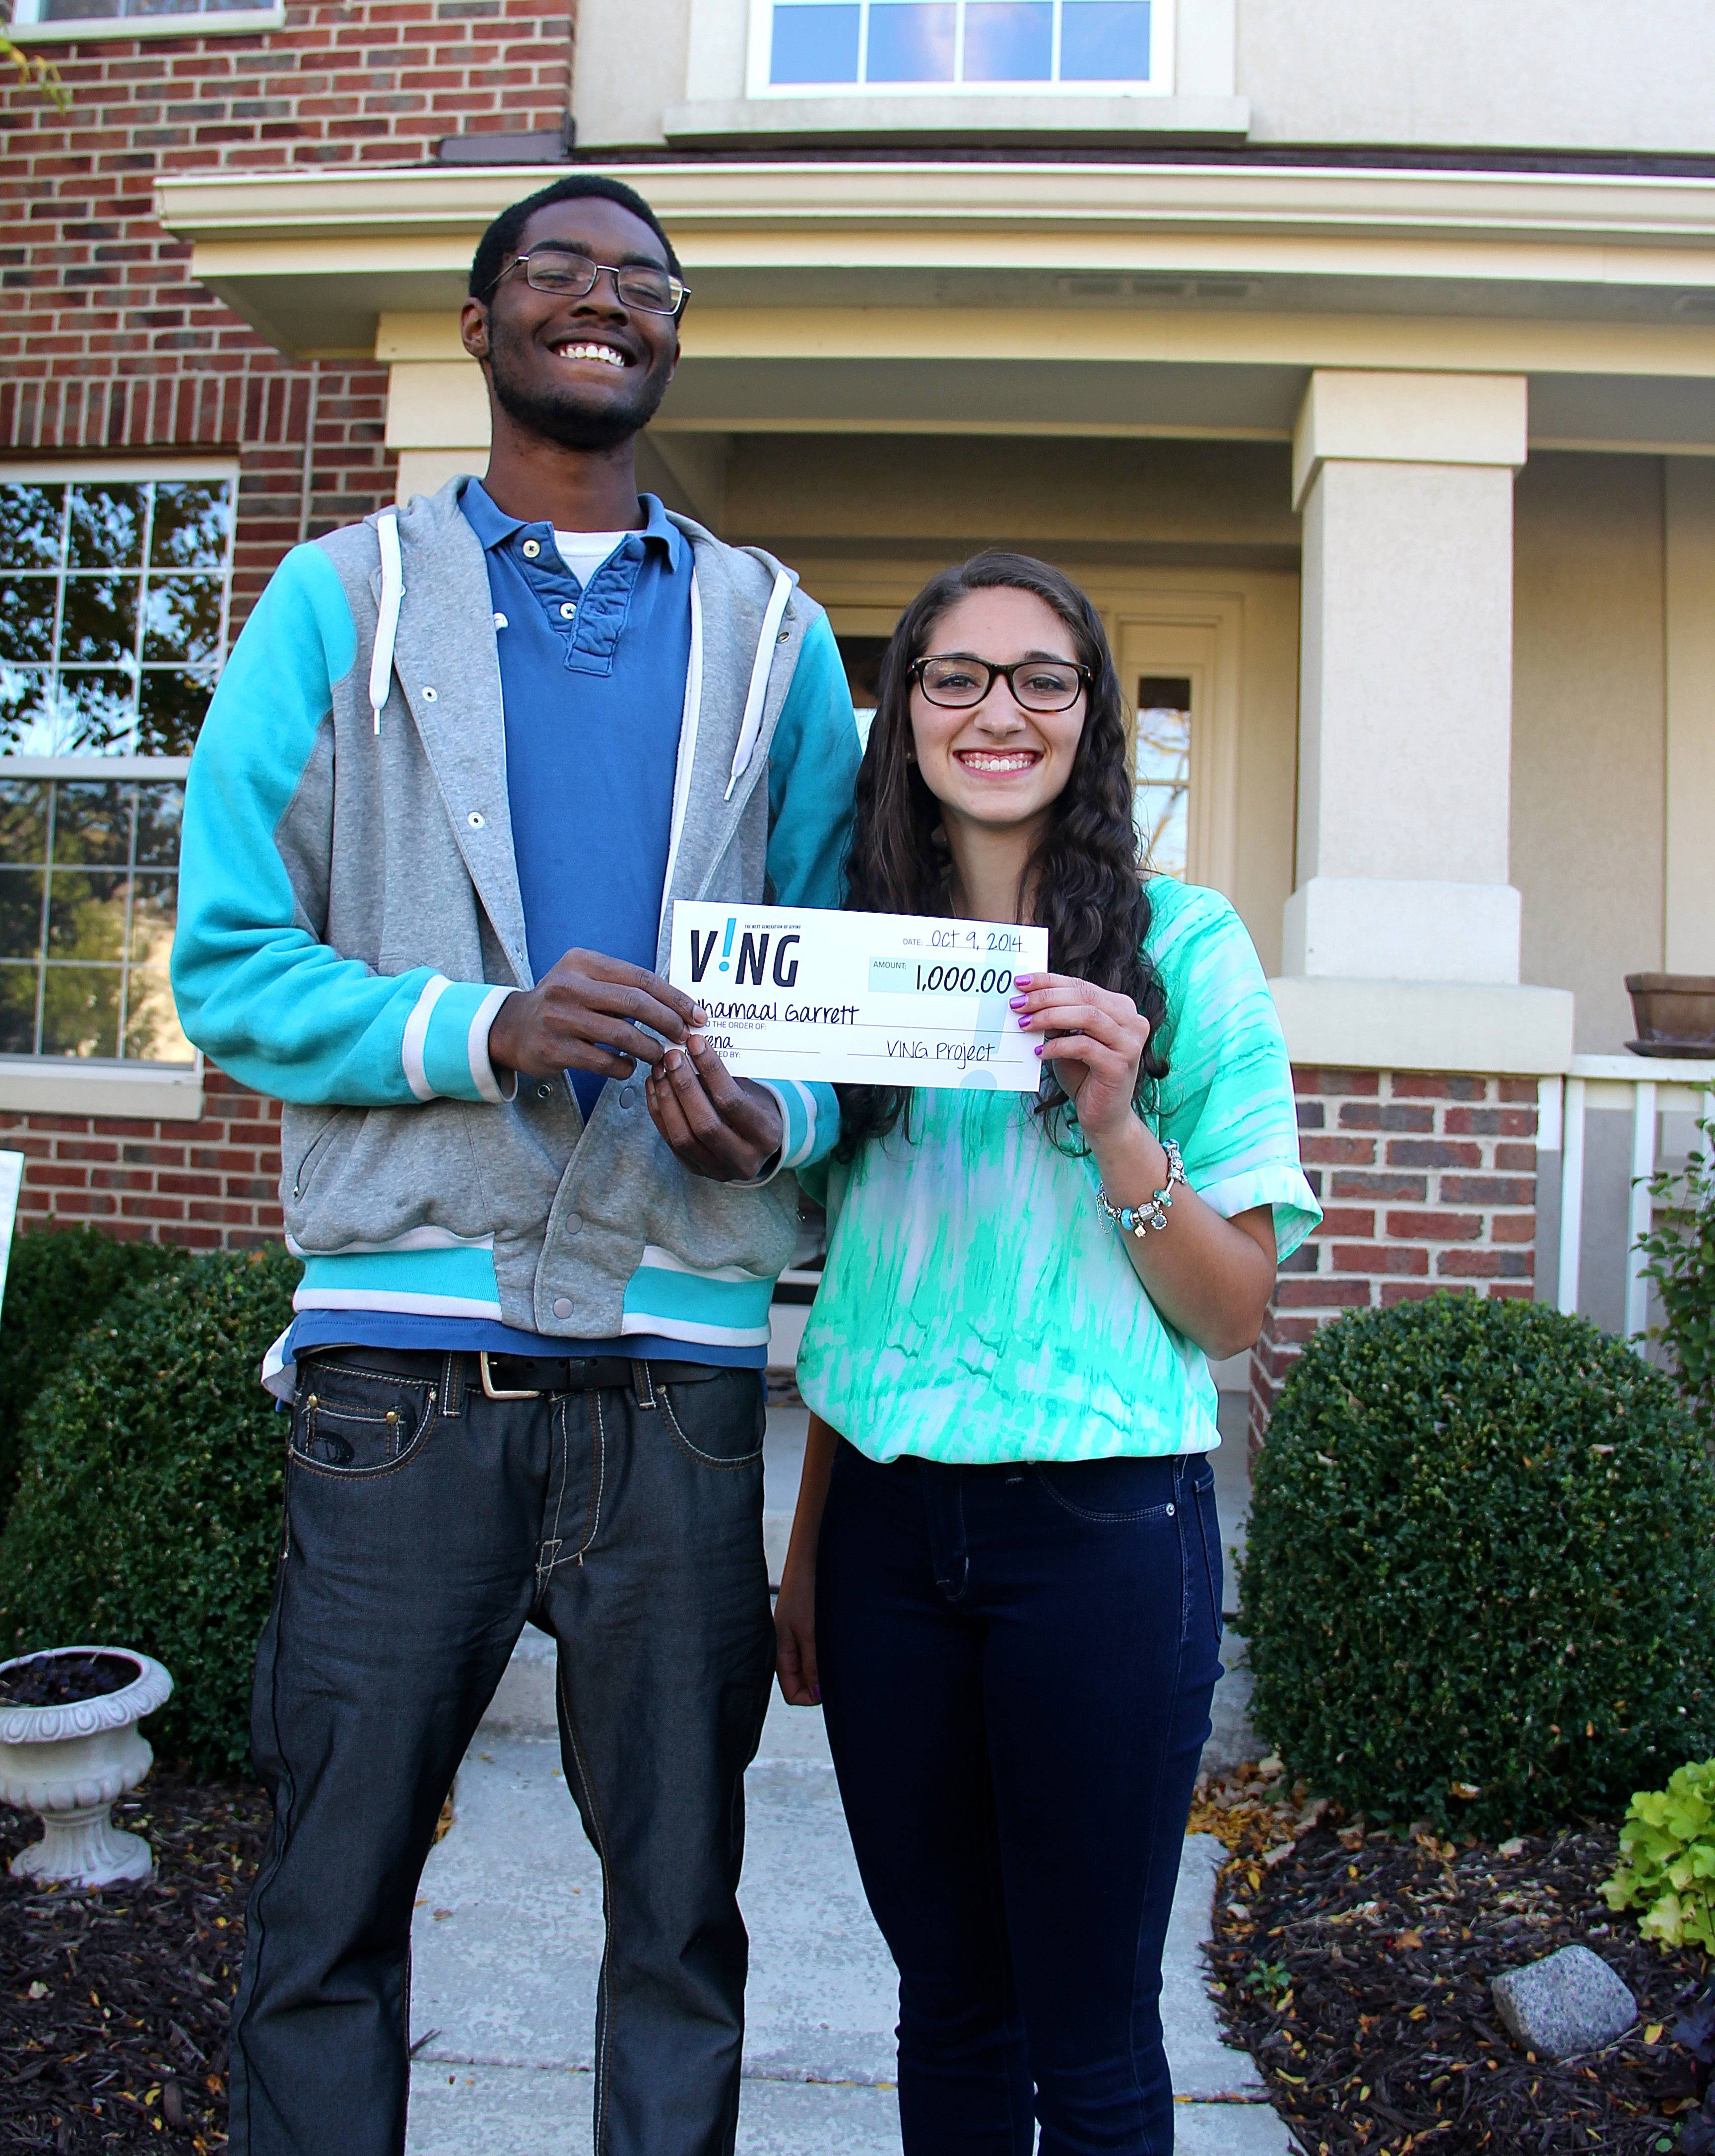 VING Project participant Serena Panos, right, 16, delivers a surprise check for $1,000 to her chosen recipient, Jhamaal Grant, outside of her neighbor's house.